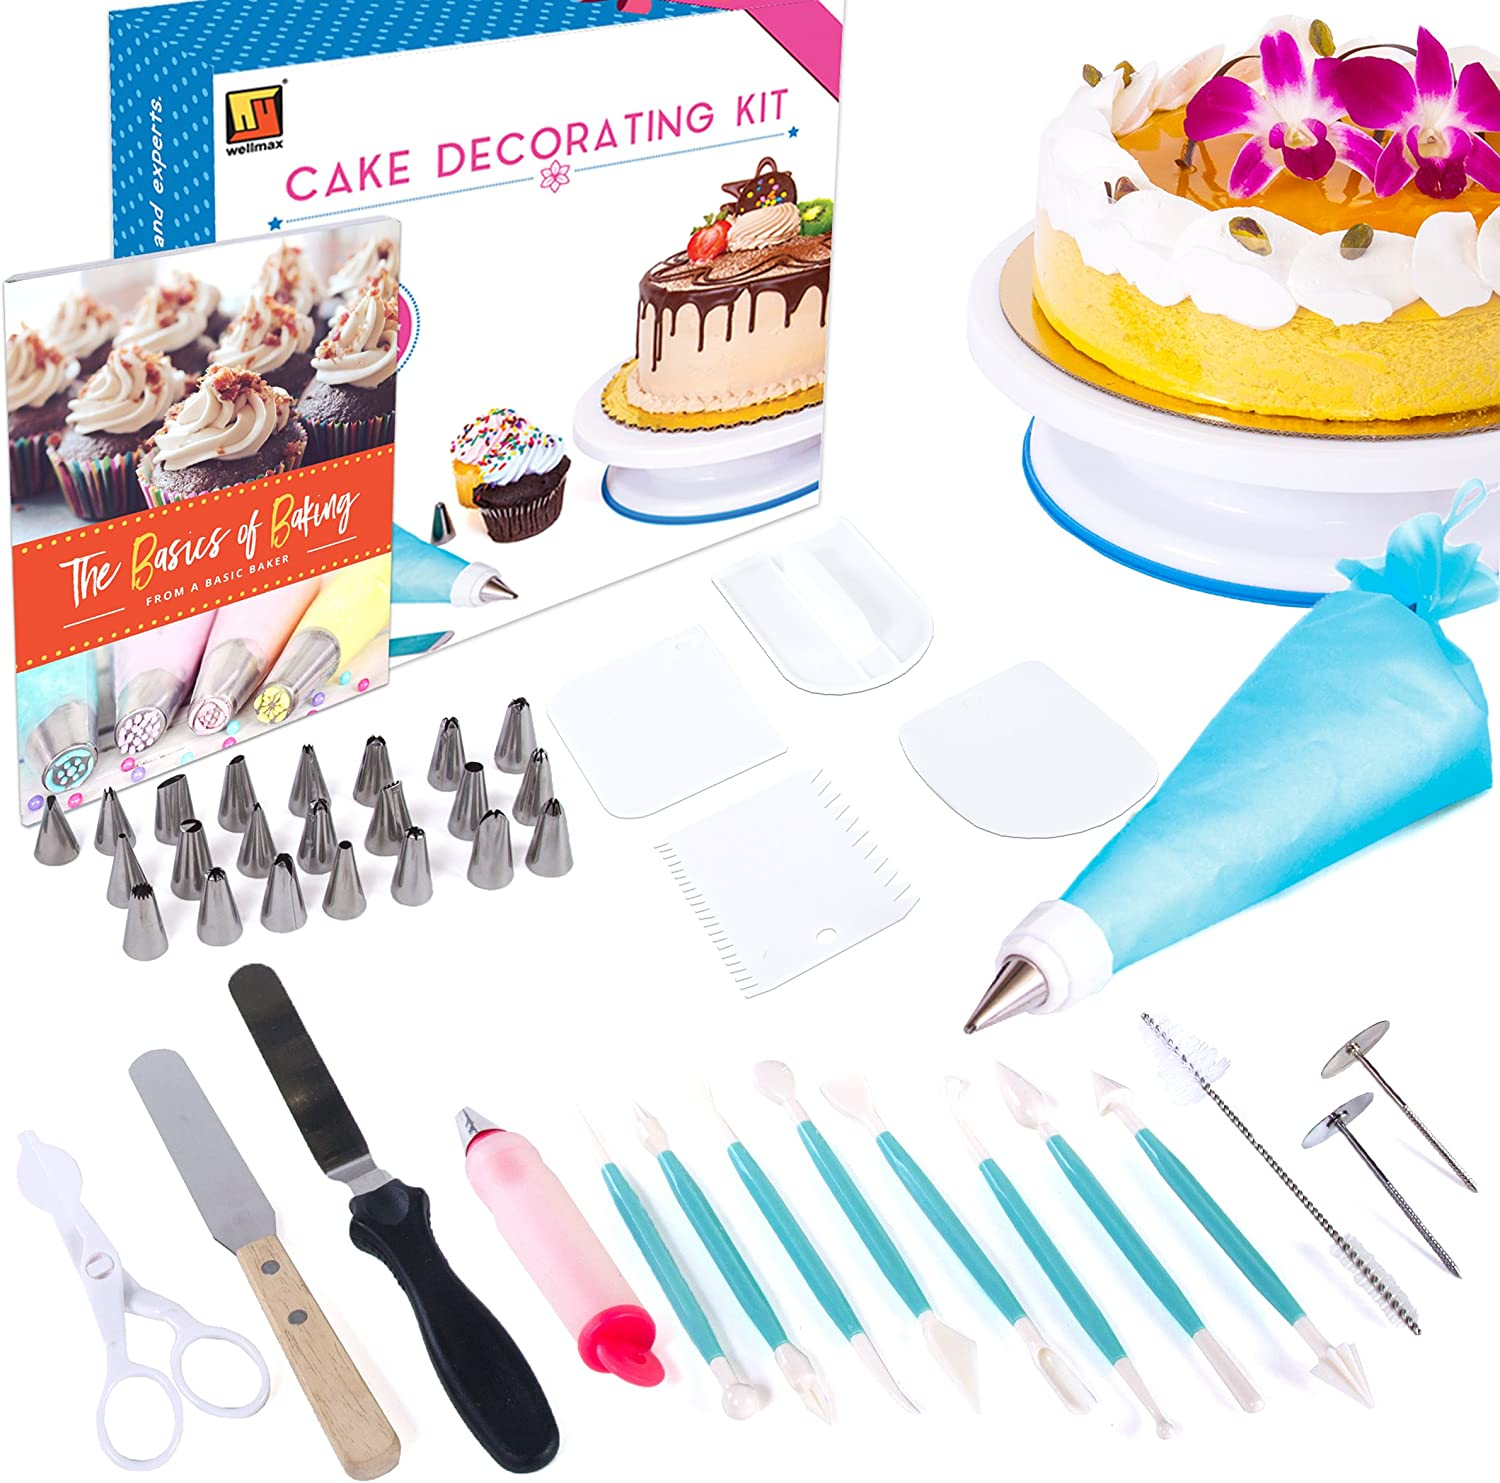 Cake Decorating Kit 159 Pcs Cupcake Decorating Supplies for Beginners Cookie Baking Supplies Cake Decorating and Tools 24 Russian Piping Tips